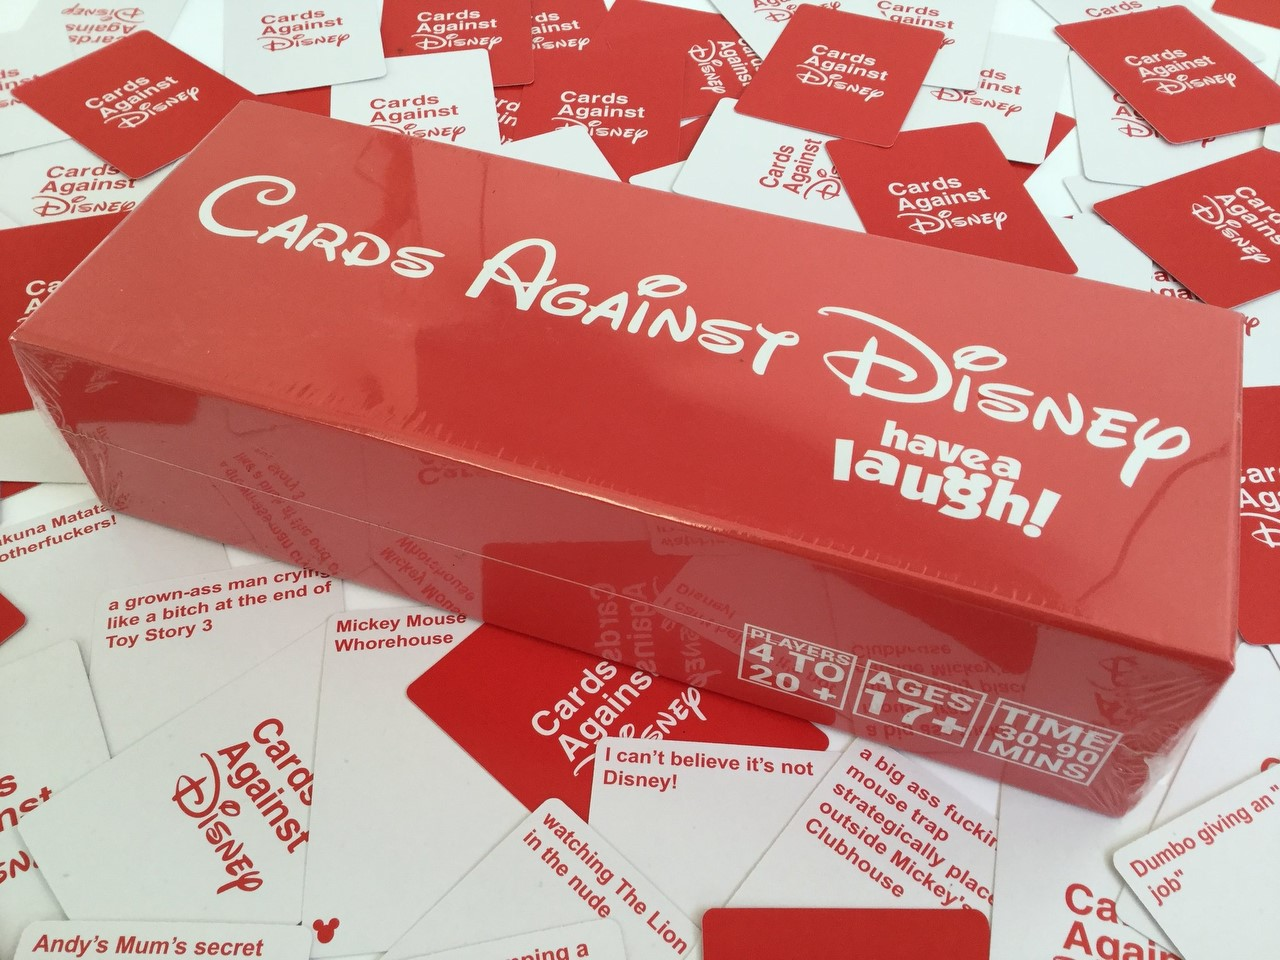 Mum Gets Shock After Buying Cards Against Disney For Family Night